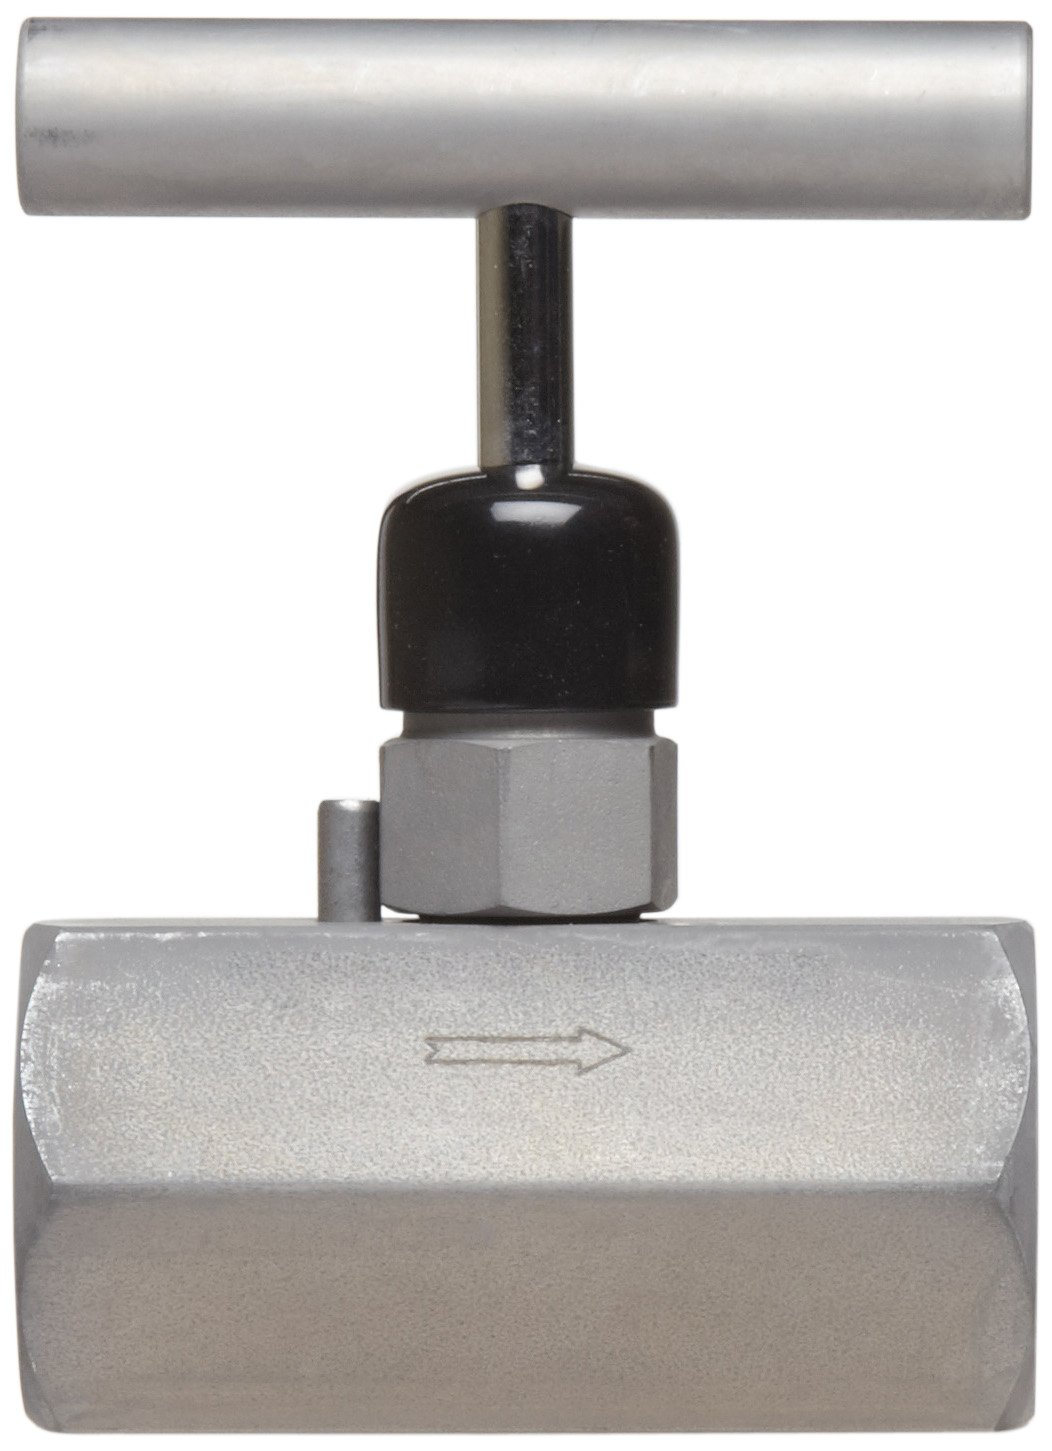 Enerpac V-82 Needle Valve, 0 to 10,000 psi